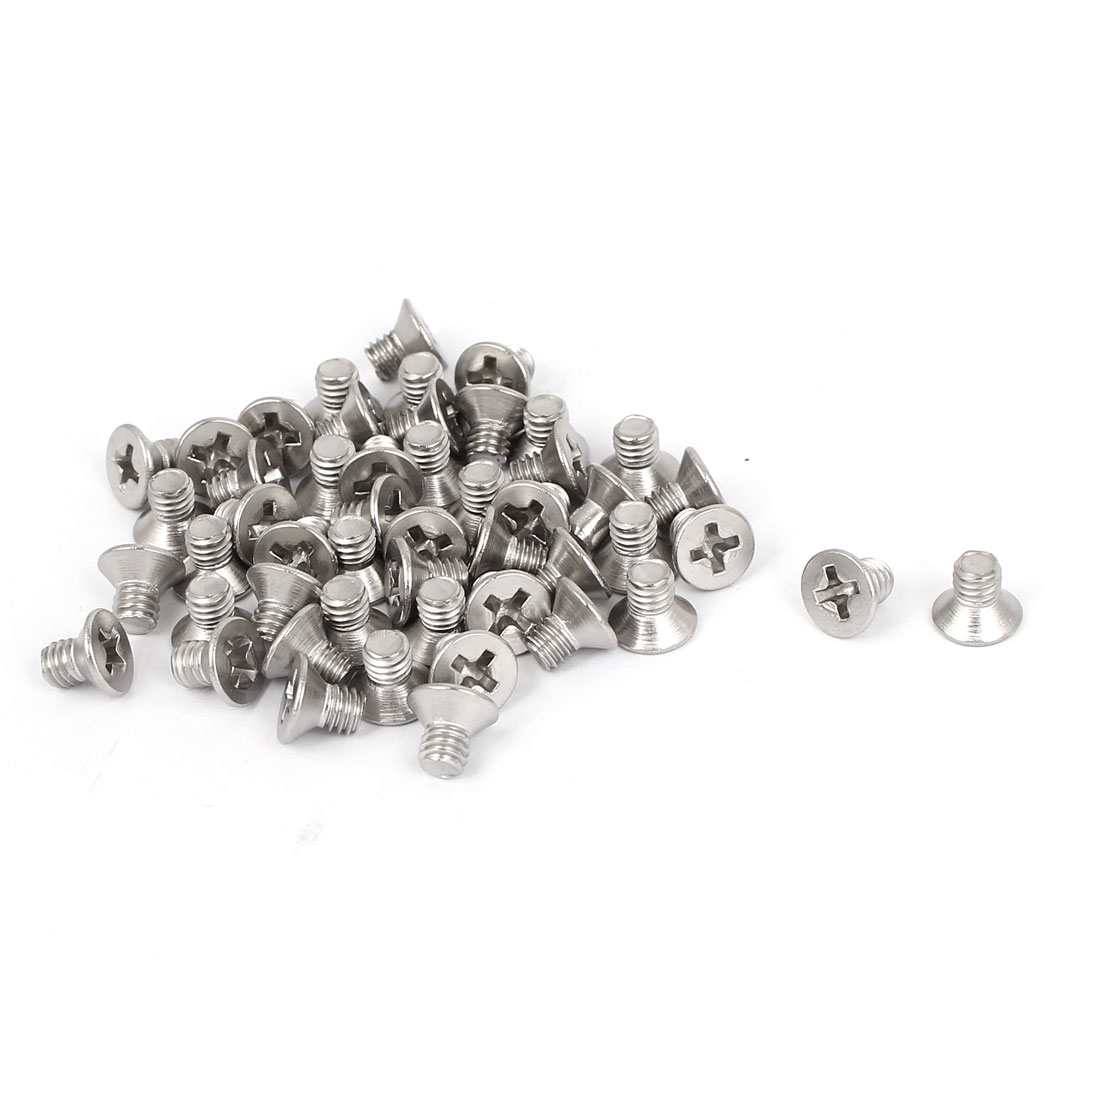 M4x6mm Stainless Steel Phillips Flat Countersunk Head Screws 50pcs